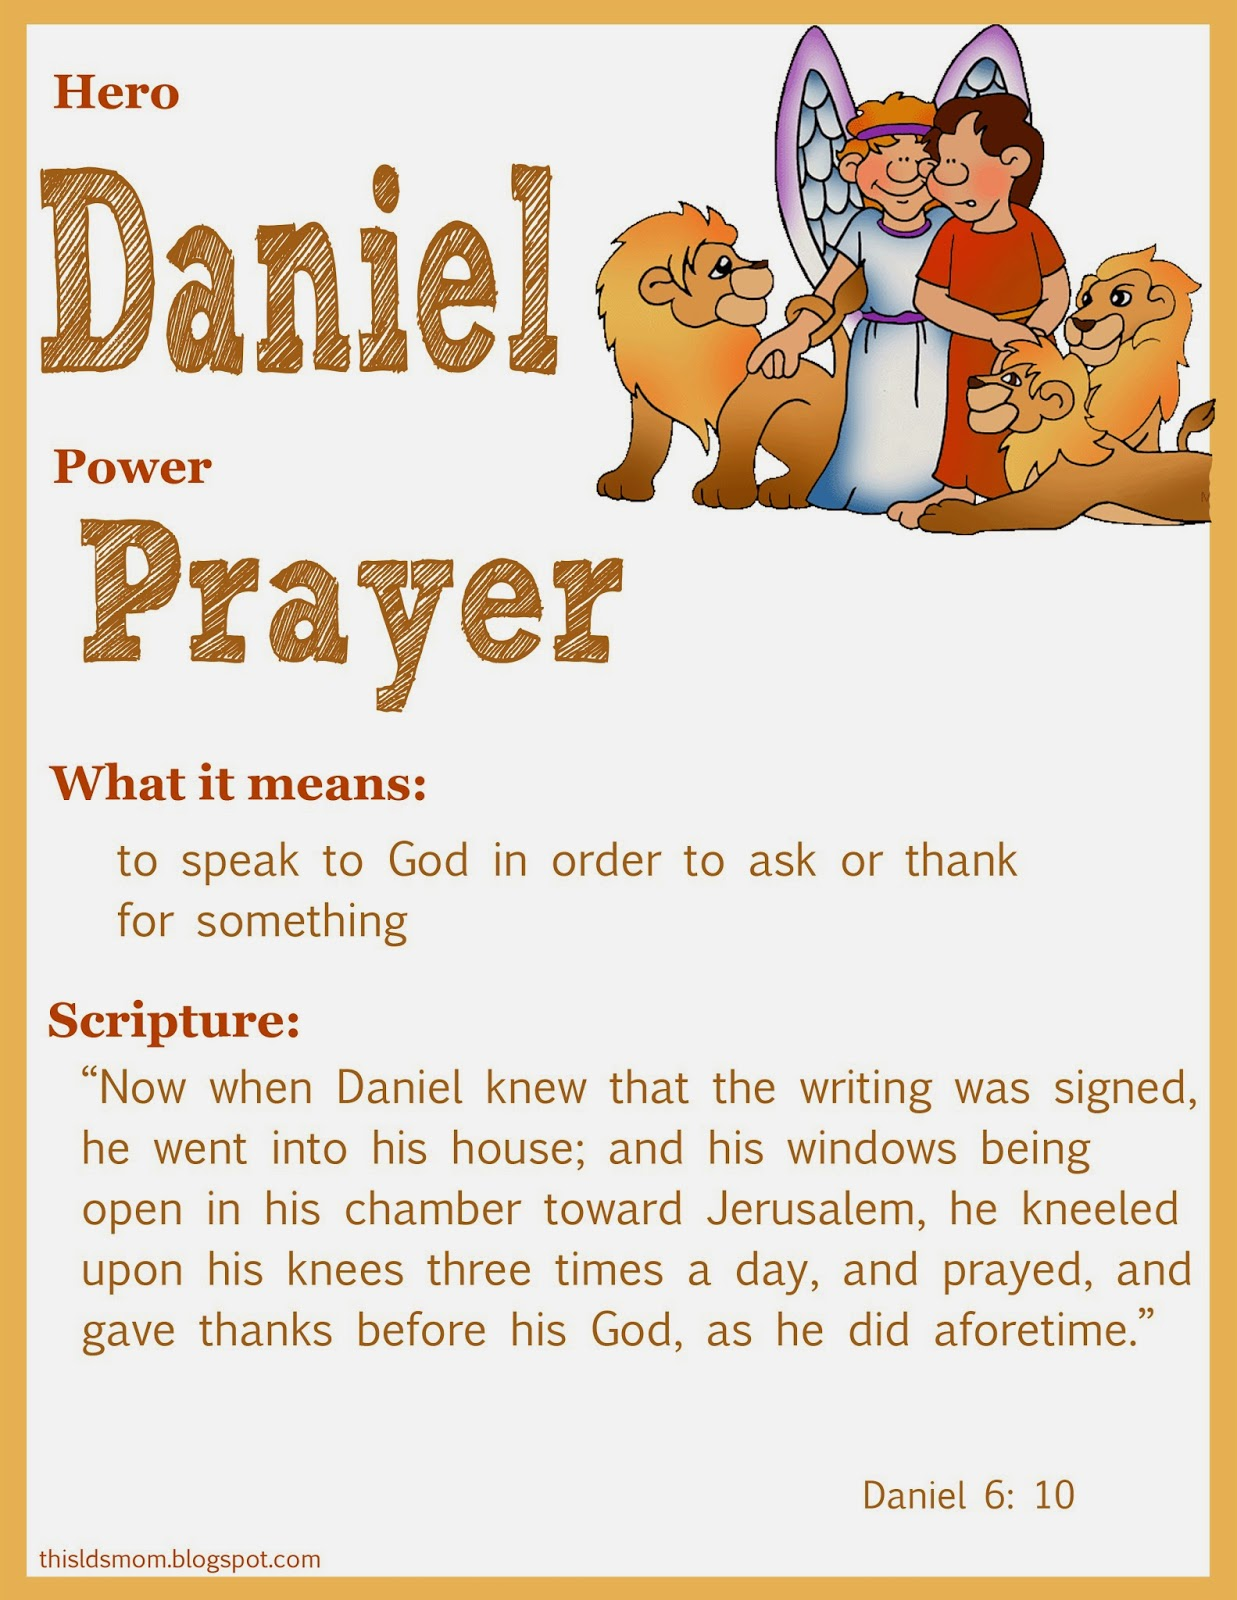 Printable coloring pages daniel and the lions den - Coloring Pages Of Daniel And The Lions Den